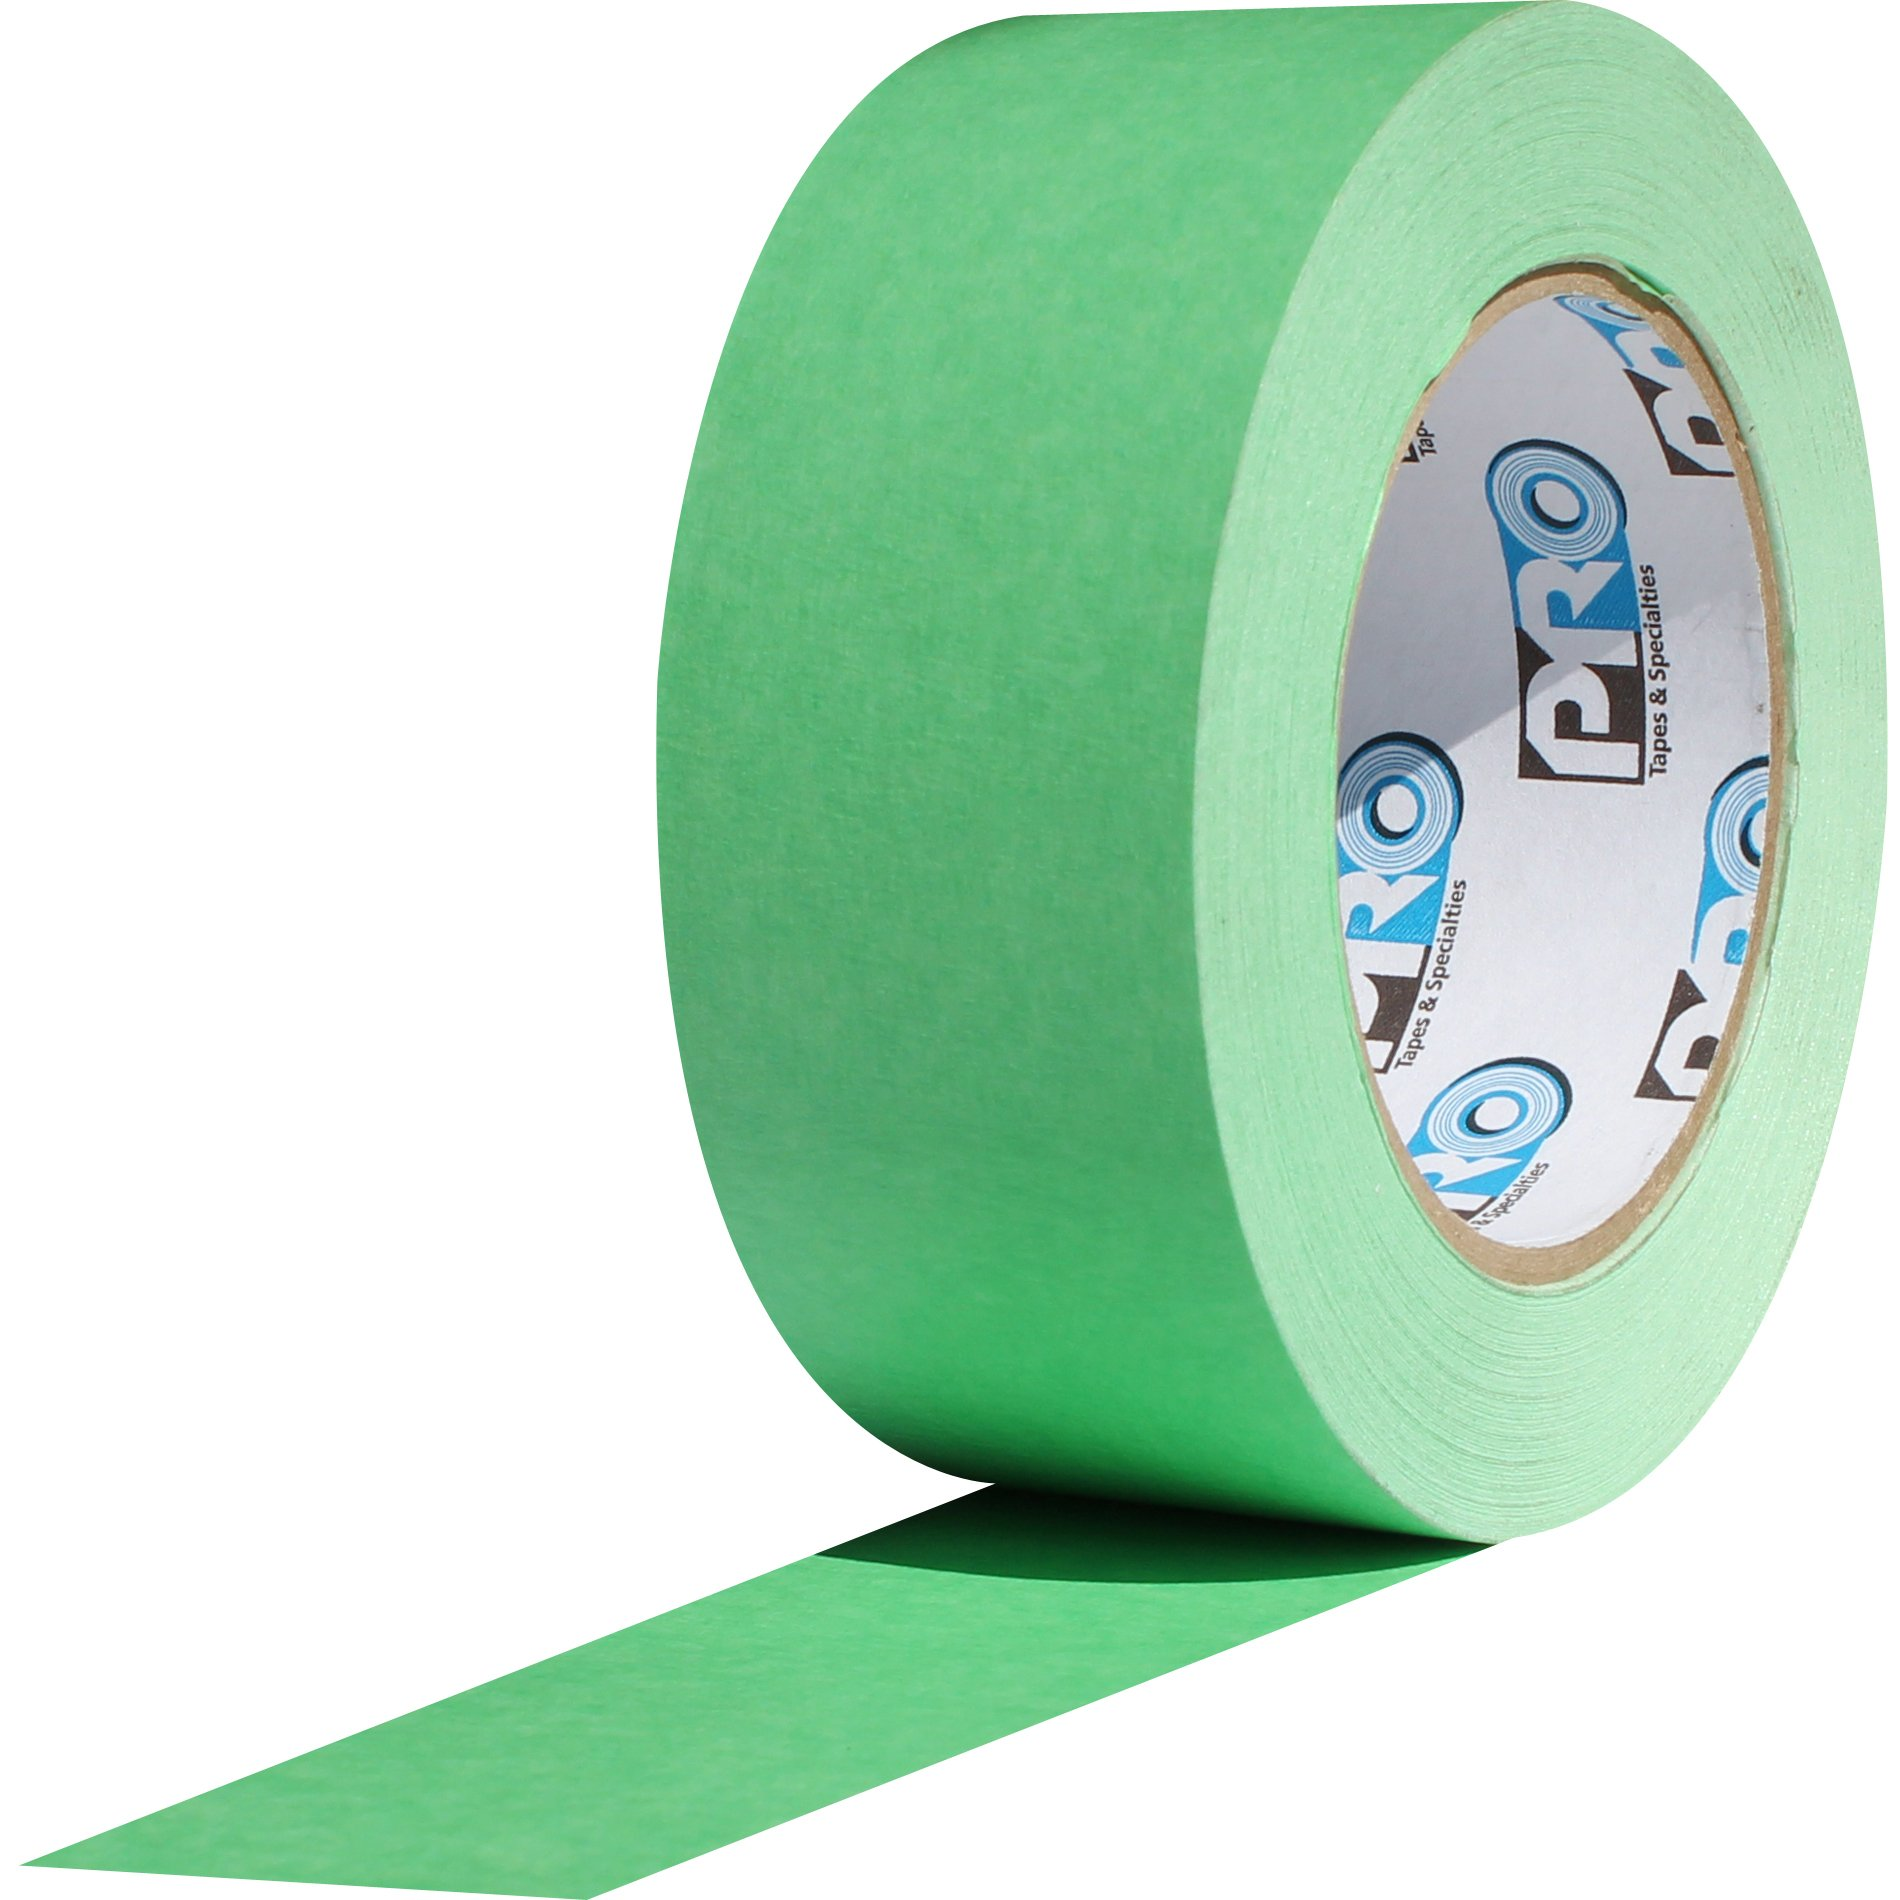 ProTapes Pro Scenic 708 Crepe Paper 8 Day Easy Release Painters Masking Tape, 60 yds Length x 2'' Width, Green (Pack of 1)